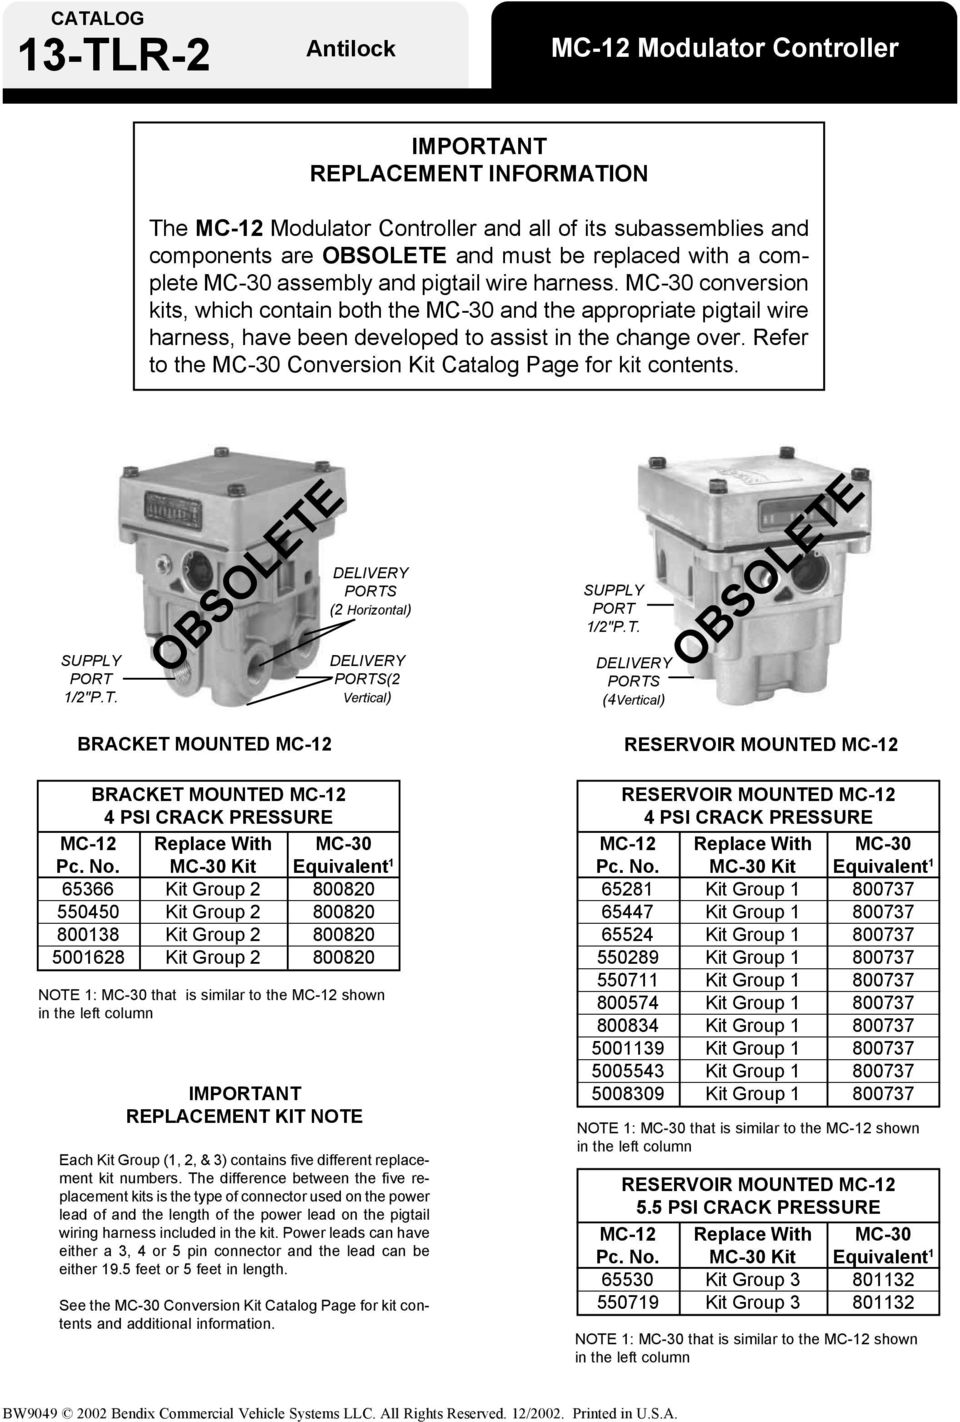 Bendix Abs For Trailers Pdf Pt Trailer Wiring Harness Refer To The Mc 30 Conversion Kit Catalog Page Contents Supply Port